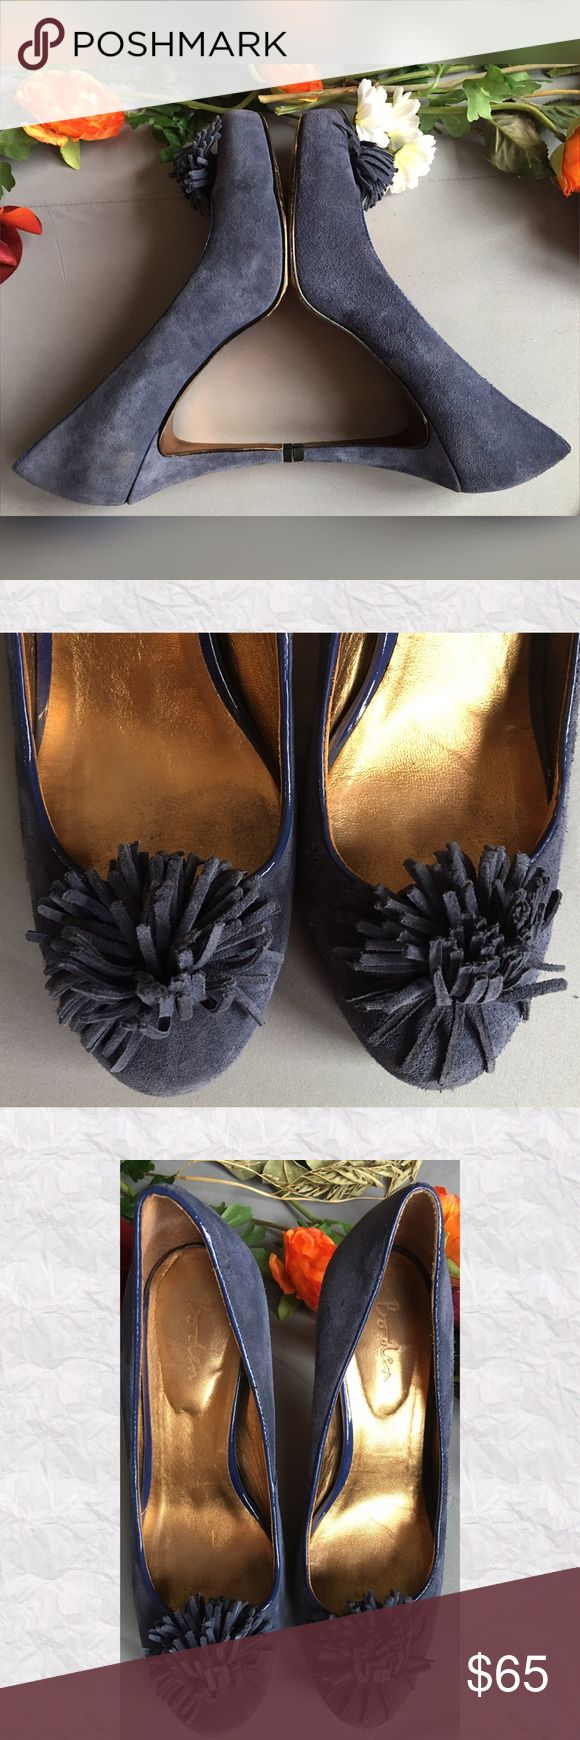 "Boden Blue Leather Pom Pom Pumps *SALE IS FOR SHOES ONLY!!  *Condition: Very good. Light overall wear shown in photos. Some wear to sole.  *SHOE IS STAMPED SIZE 40 (Euro) WHICH IS US 9-9.5. THESE SHOES RUN SMALL IN MY OPINION AND WILL WORK BEST FOR US 8.5. Please ask for additional measurements if you need them. *Style: Pom Pom Heels *Toe: Round Toe  *Heel height: 3.75"" *Platform height: 3/4"" *Material: Real Leather Upper  *Interior Stamp: Illegible  *Cushioned heel *Made in Brazil *Stored…"